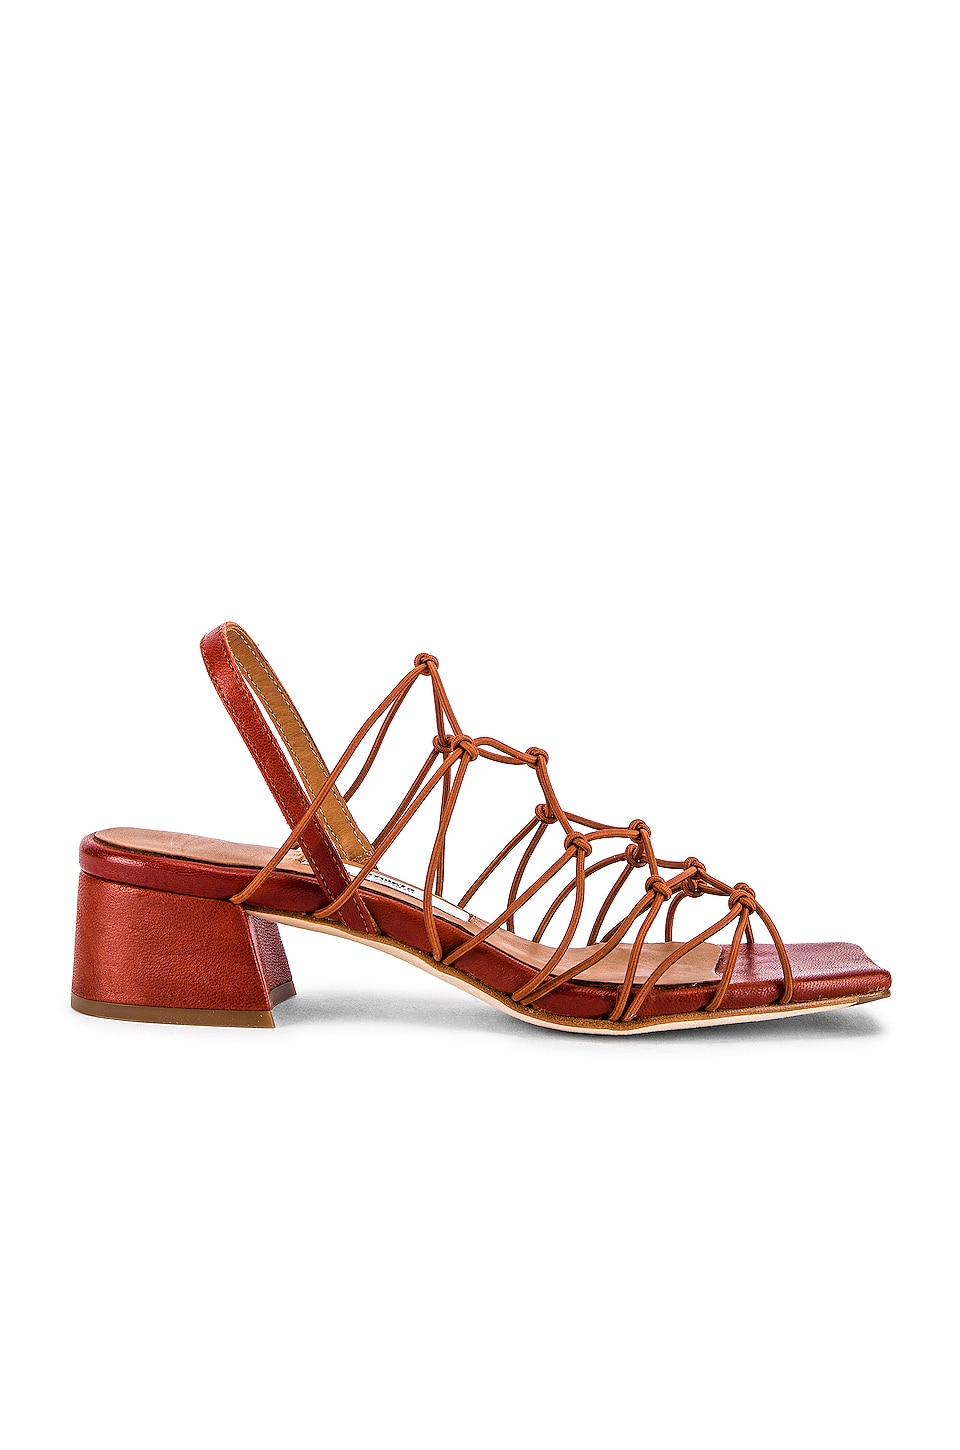 Miista Frida Sandal in Brick